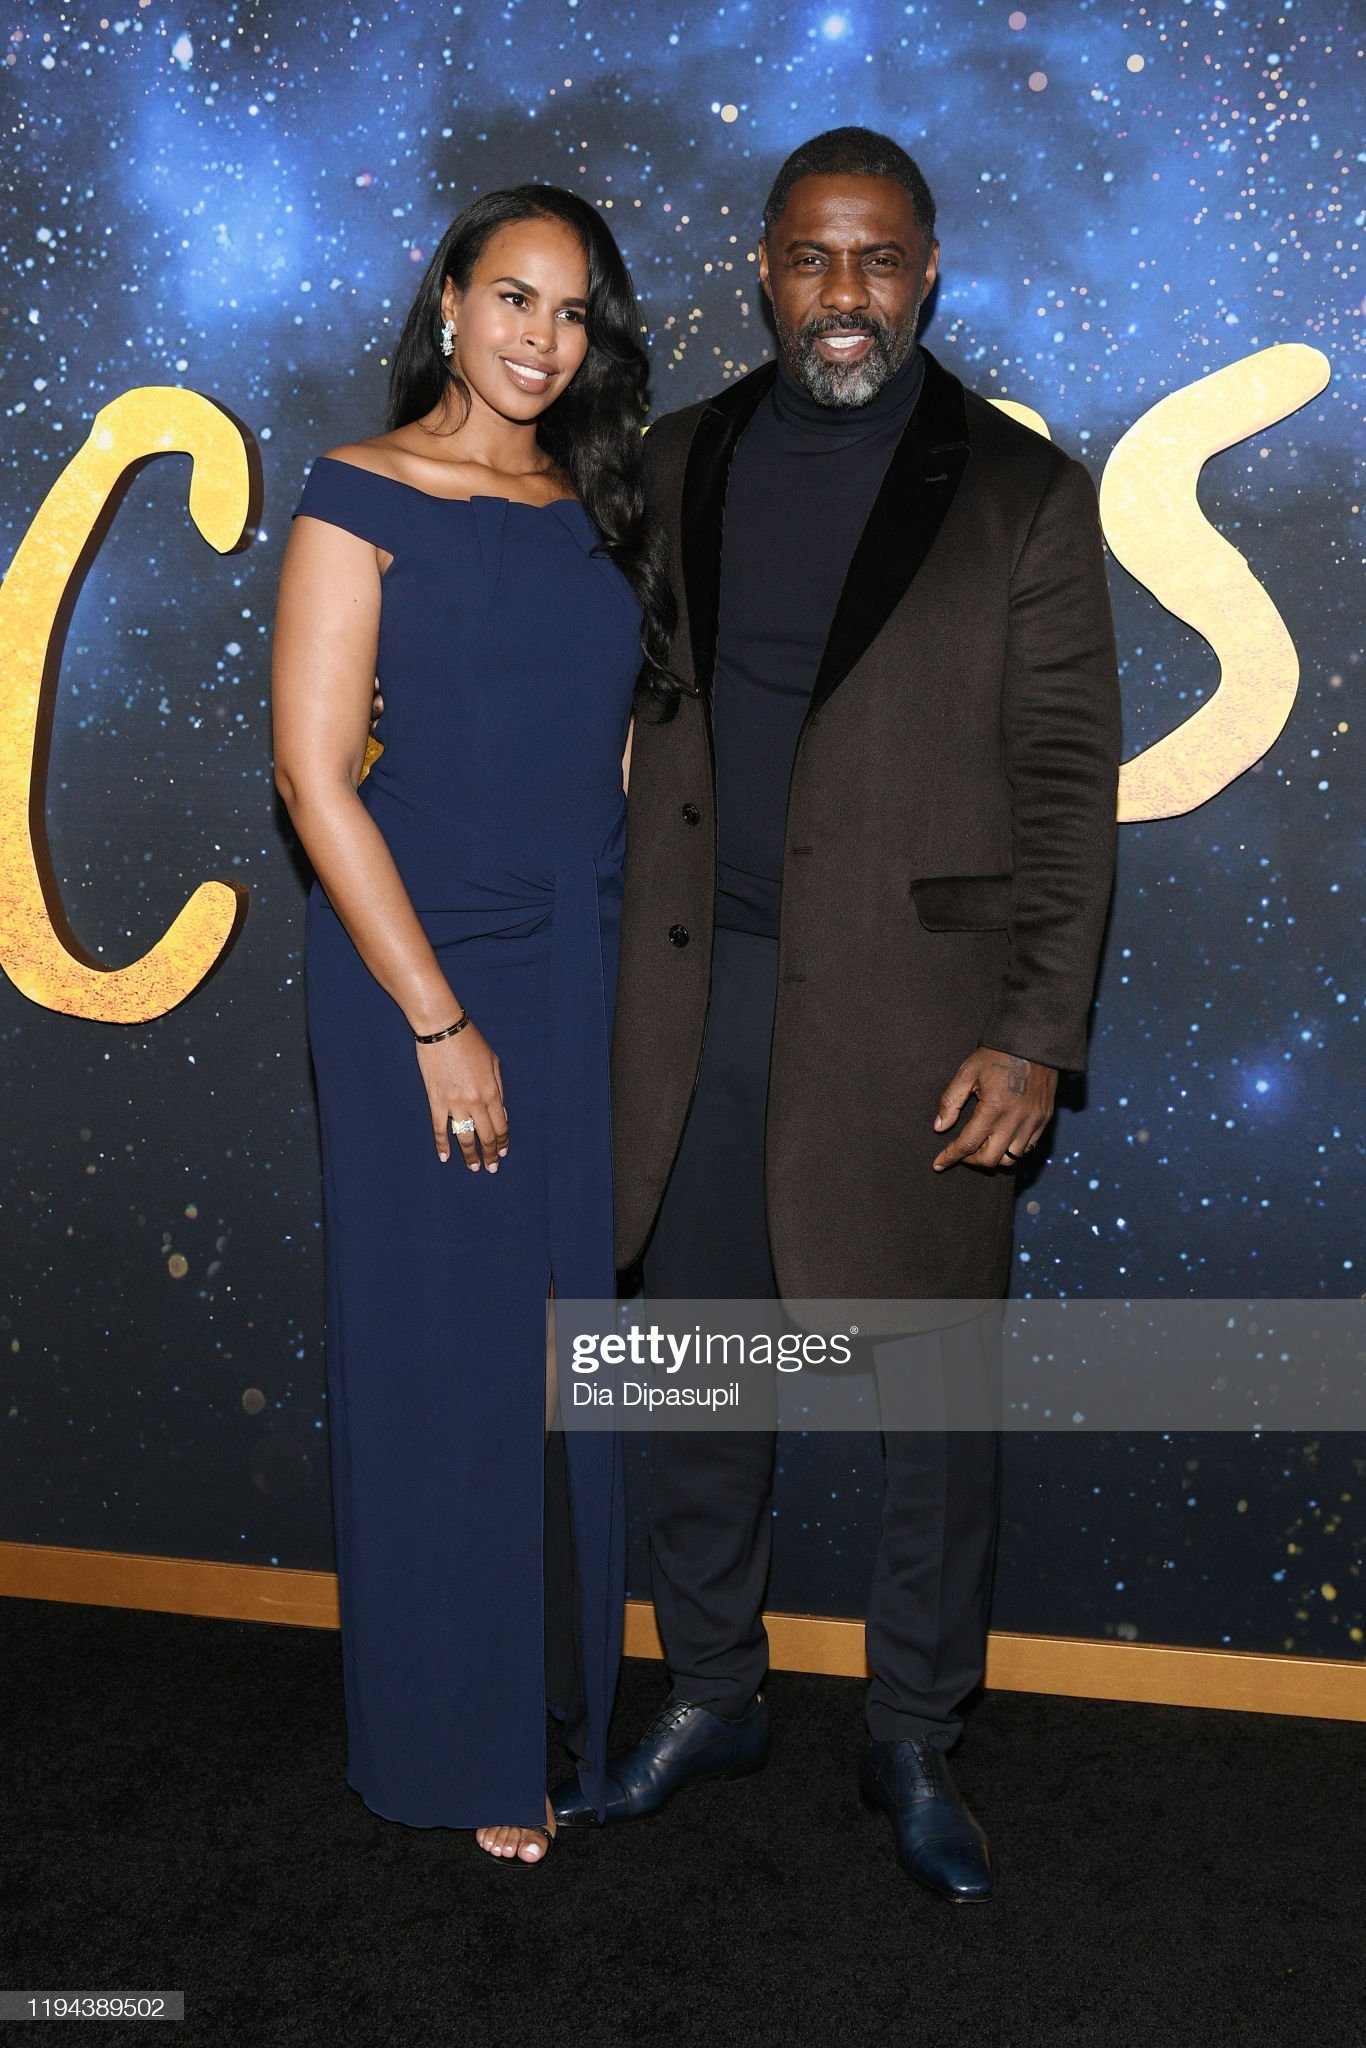 ¿Cuánto mide Idris Elba? - Real height Sabrina-dhowre-elba-and-idris-elba-attend-the-world-premiere-of-cats-picture-id1194389502?s=2048x2048